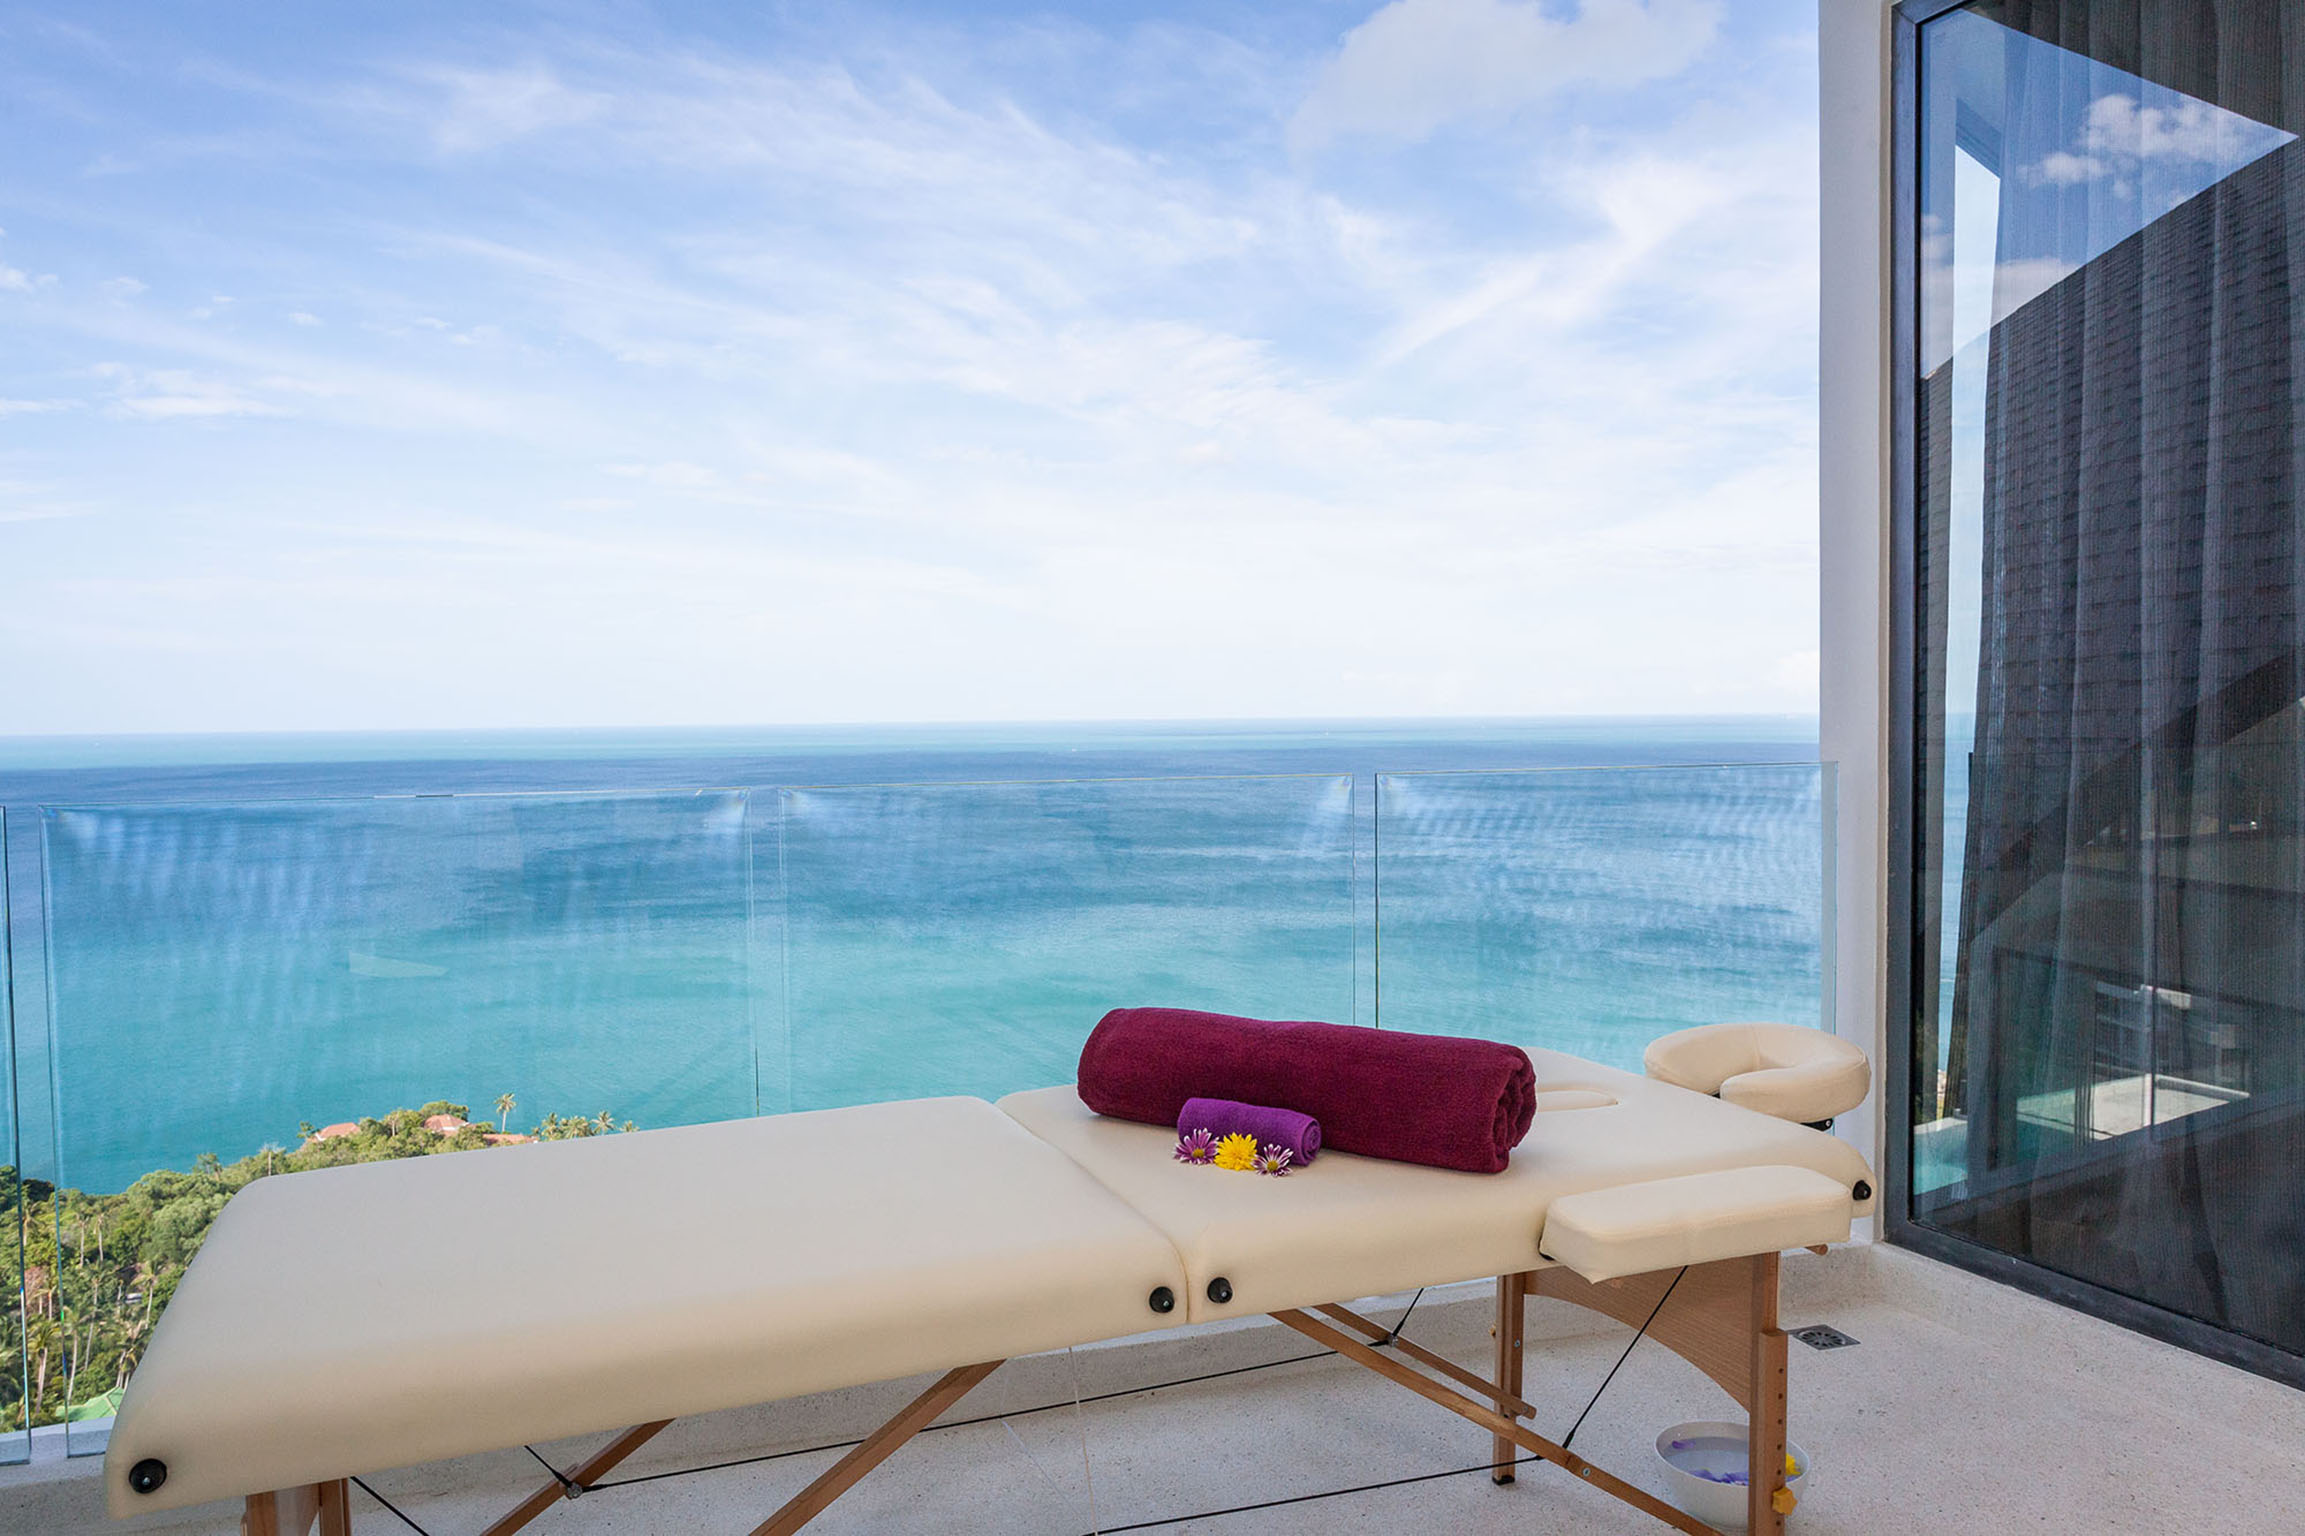 Massage table view on the bay